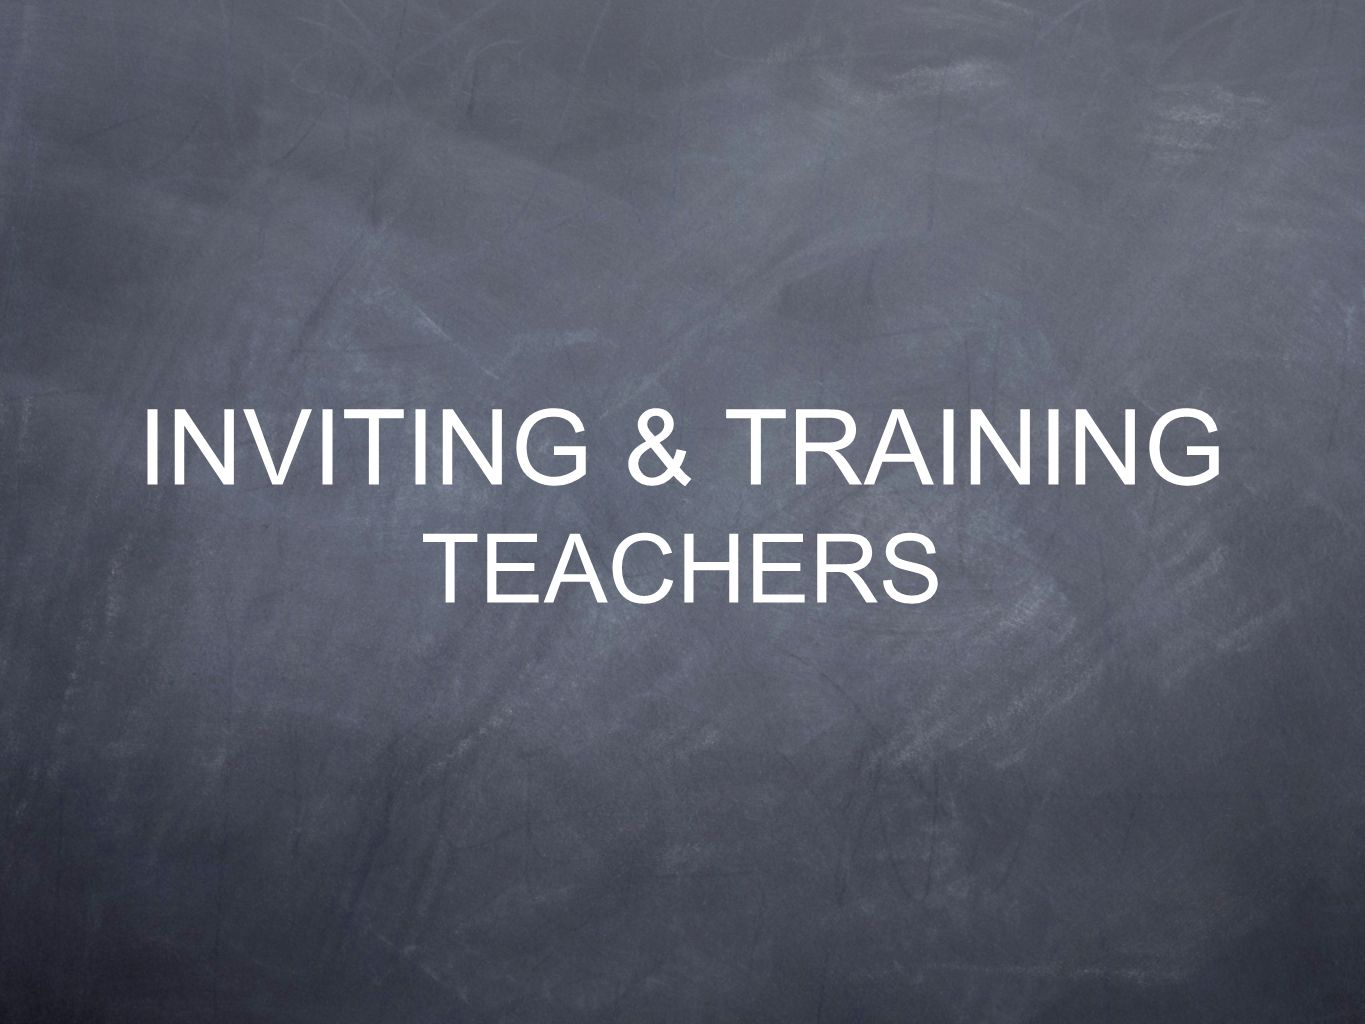 INVITING & TRAINING TEACHERS